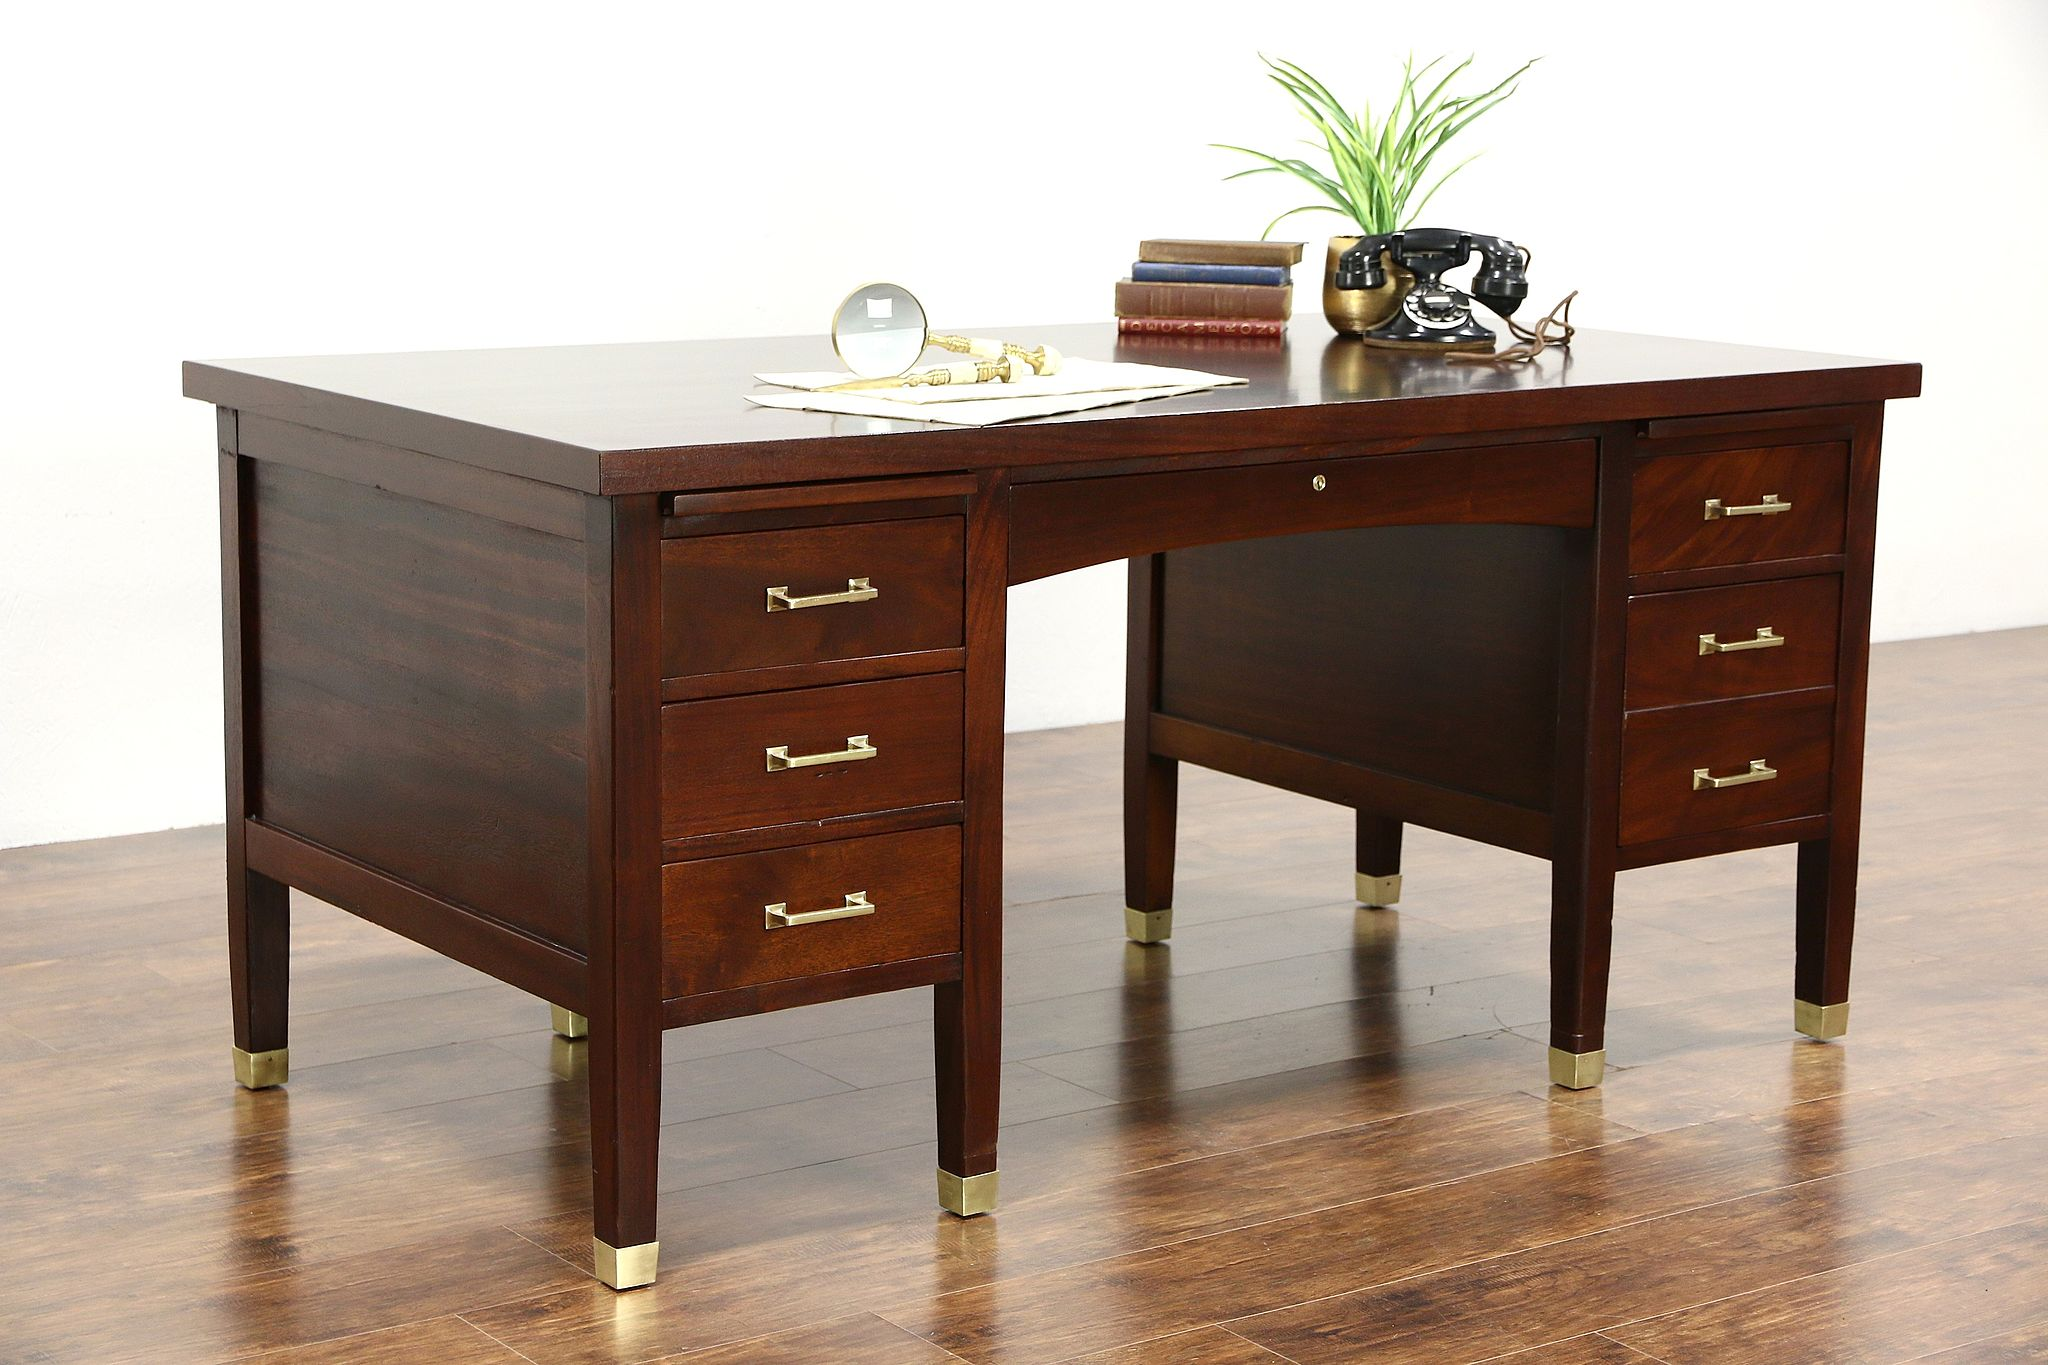 unit product storage overstock shipping free drawer south with home shore today file interface garden desk